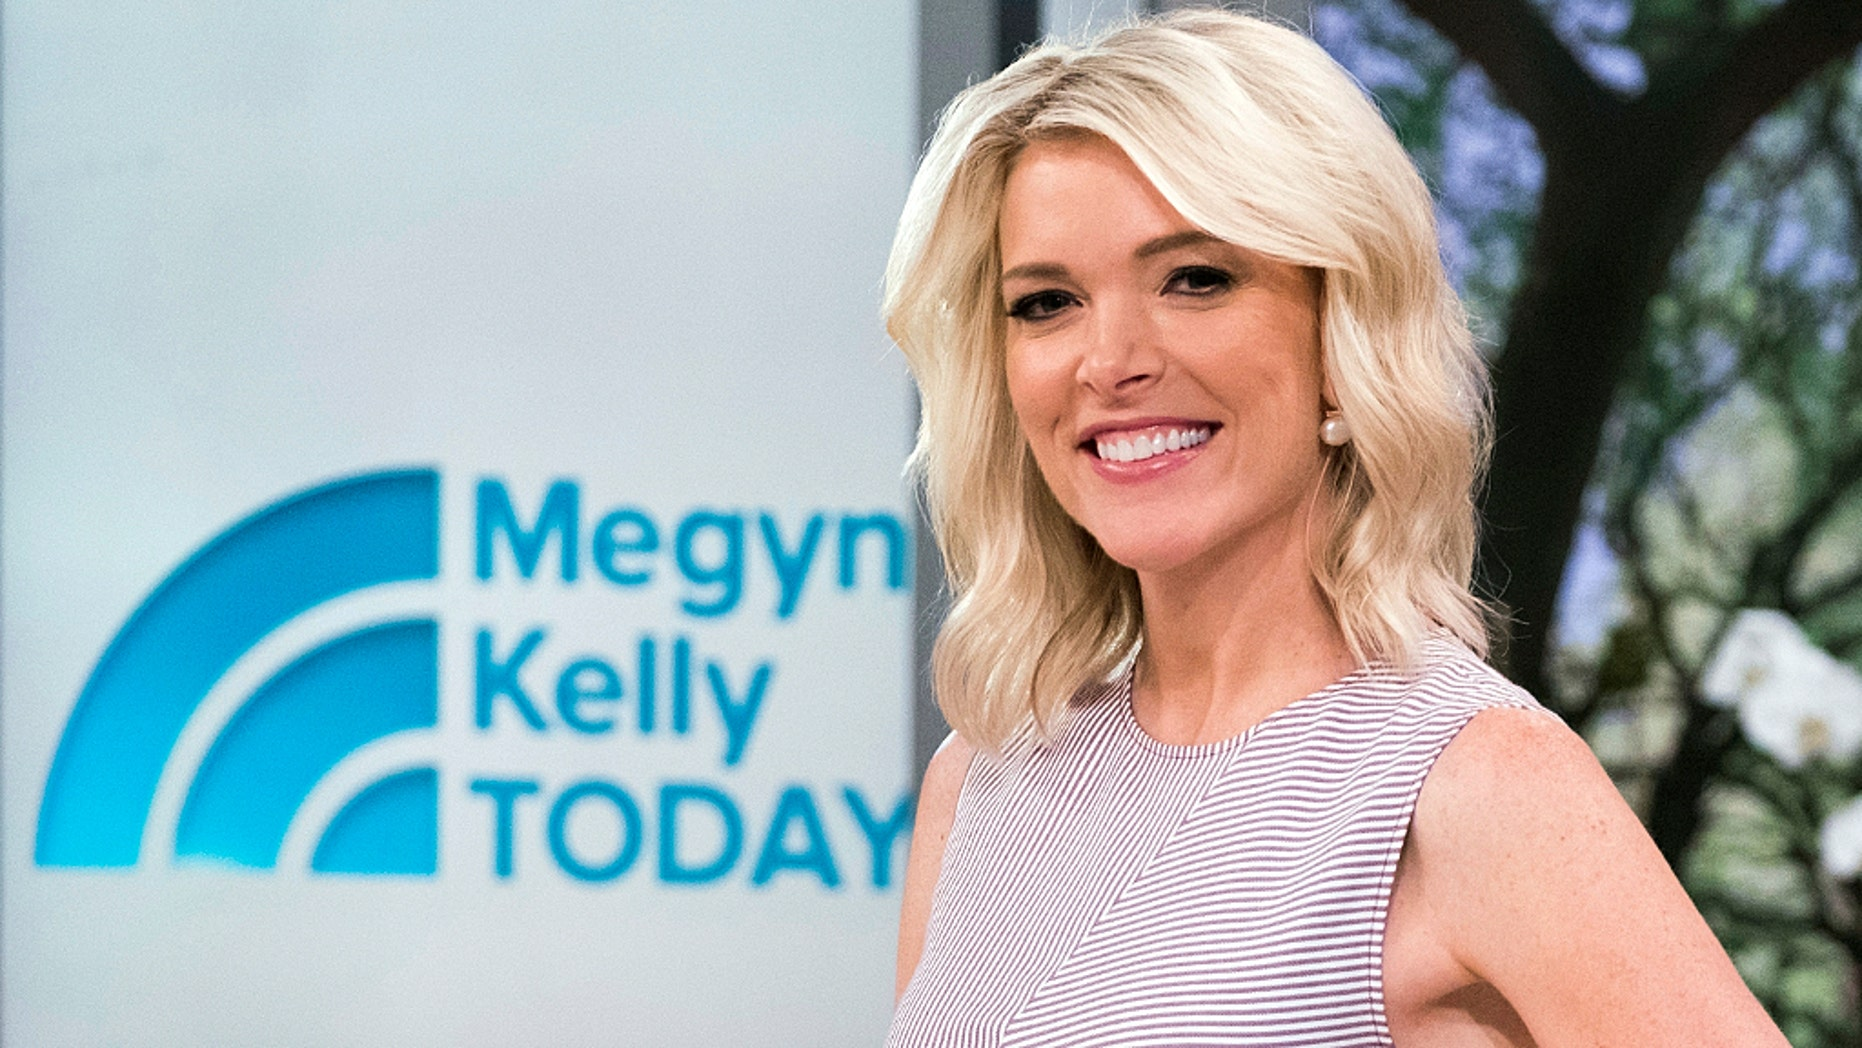 Megyn Kelly Confirms Comeback to TV After NBC Exit for Defending Blackface